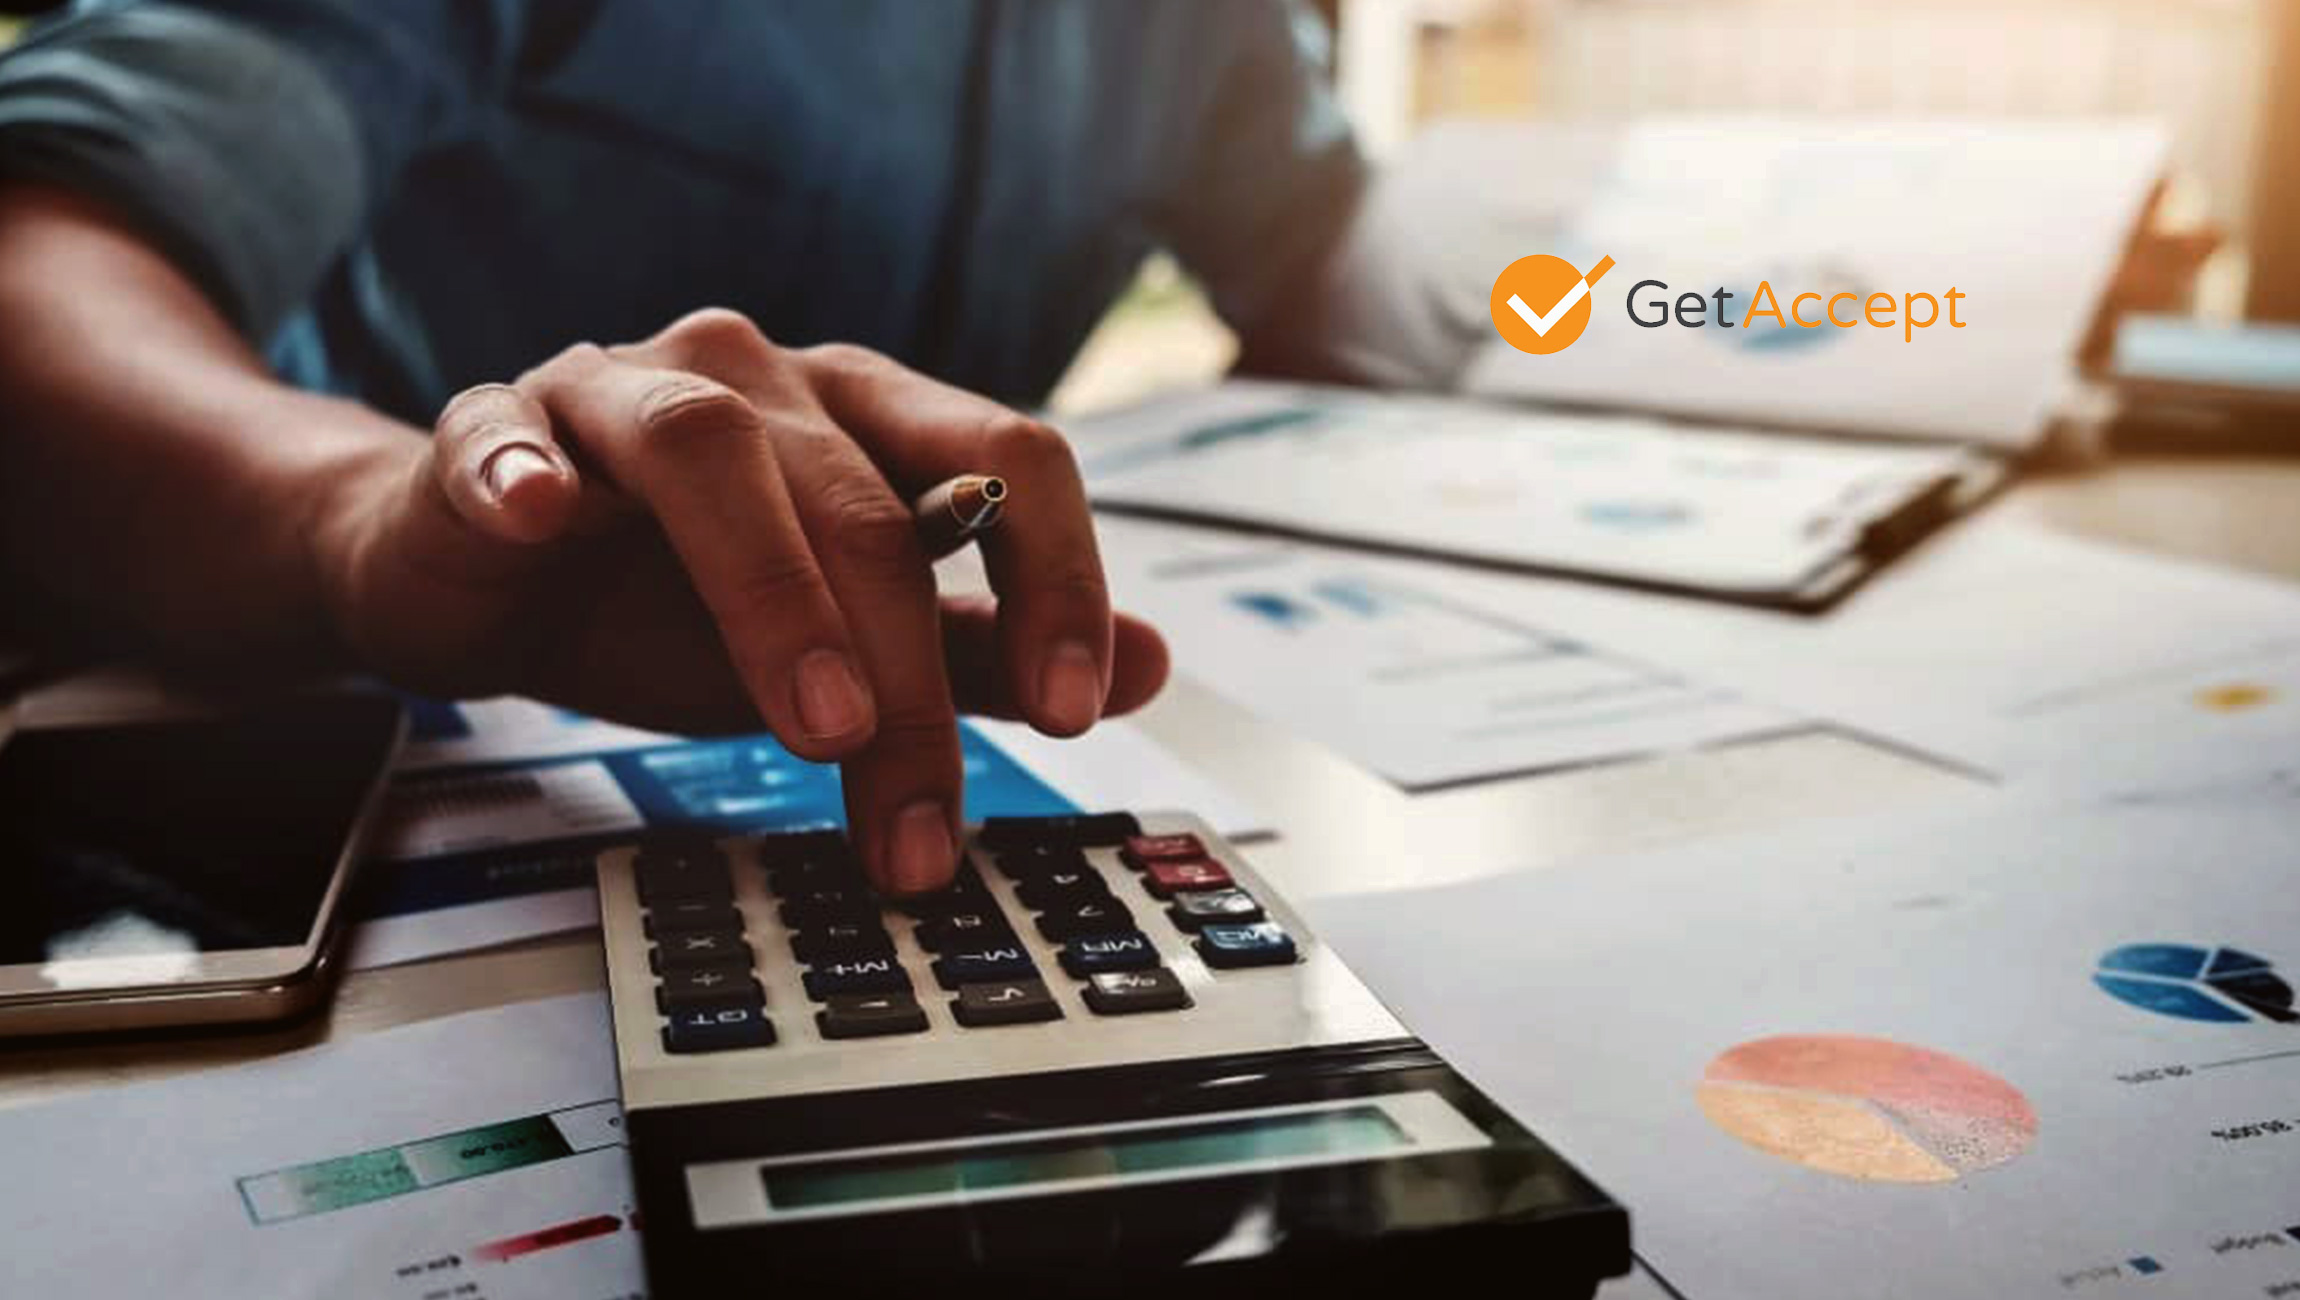 GetAccept Closes $7 Million Series A Funding Round Led by DN Capital